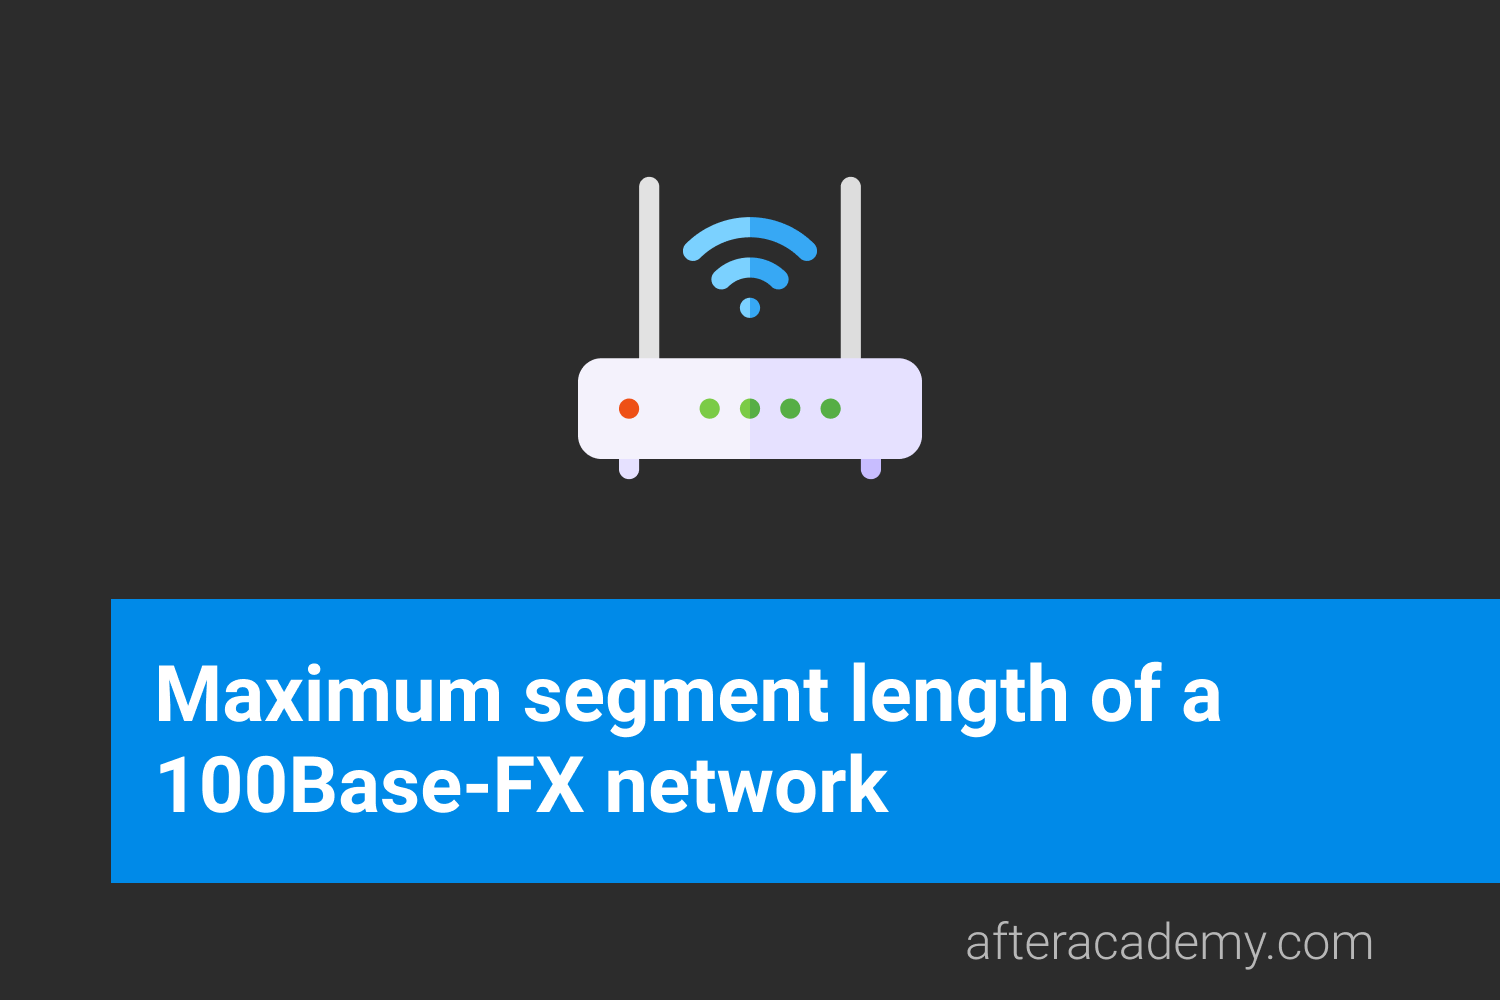 What is the maximum segment length of a 100Base-FX network?